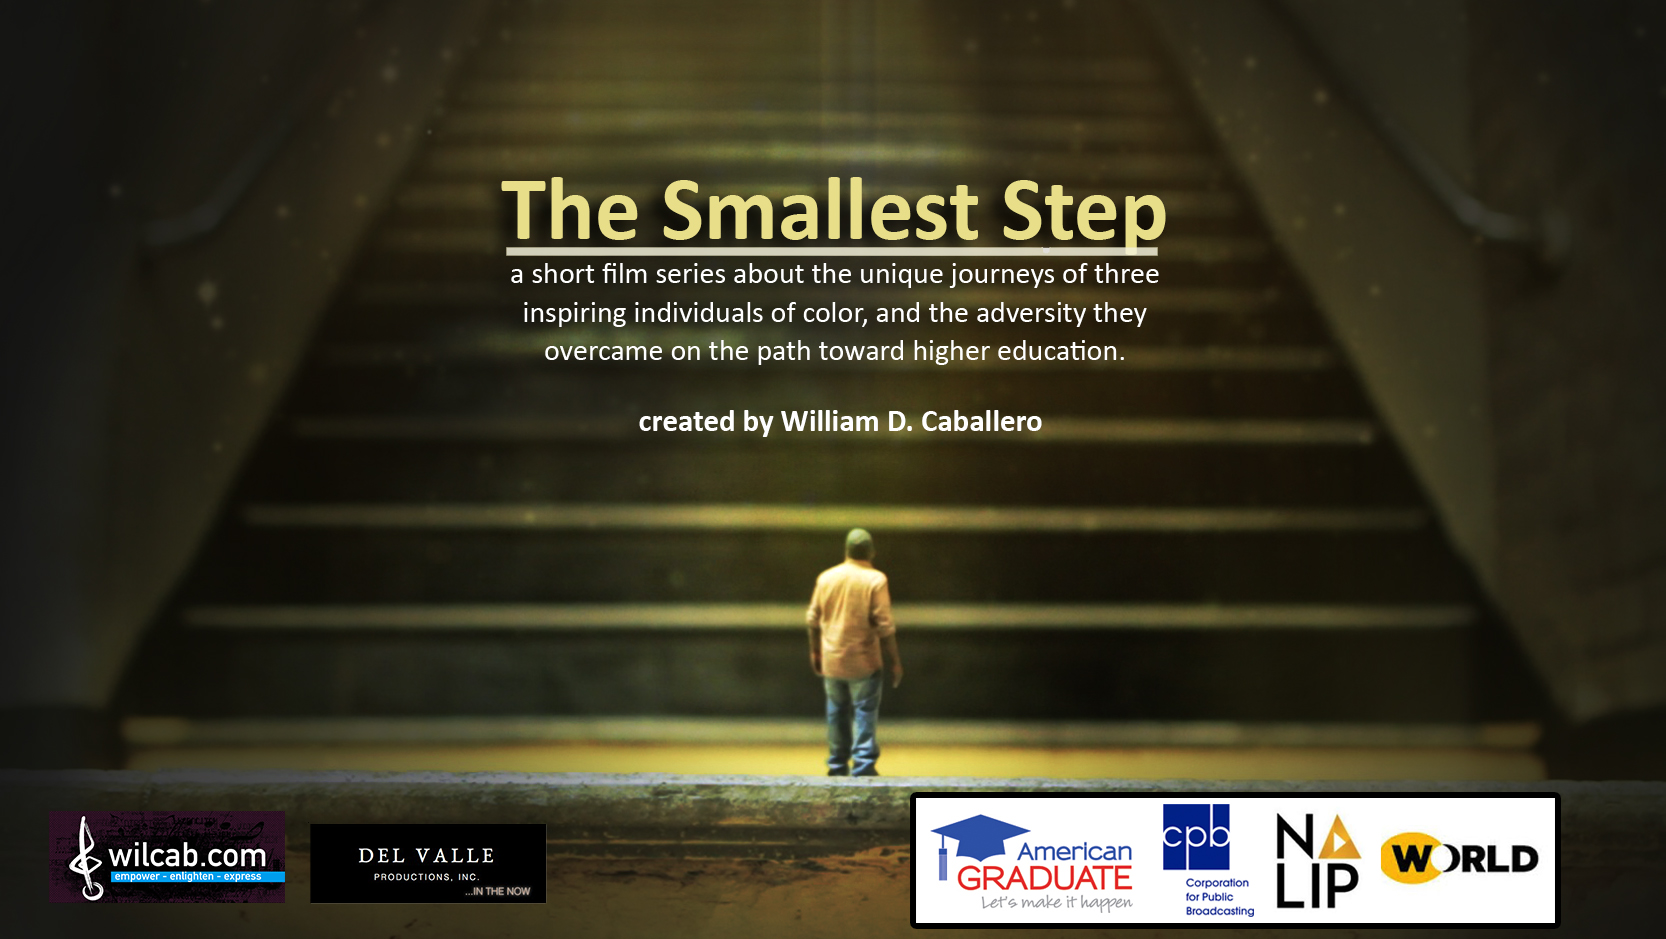 SEPTEMBER 2015: PBS and World Channel debut The Smallest Step ,a short film series about the unique journeys of three inspiring individuals of color, and the adversity they overcame on the path toward higher education.